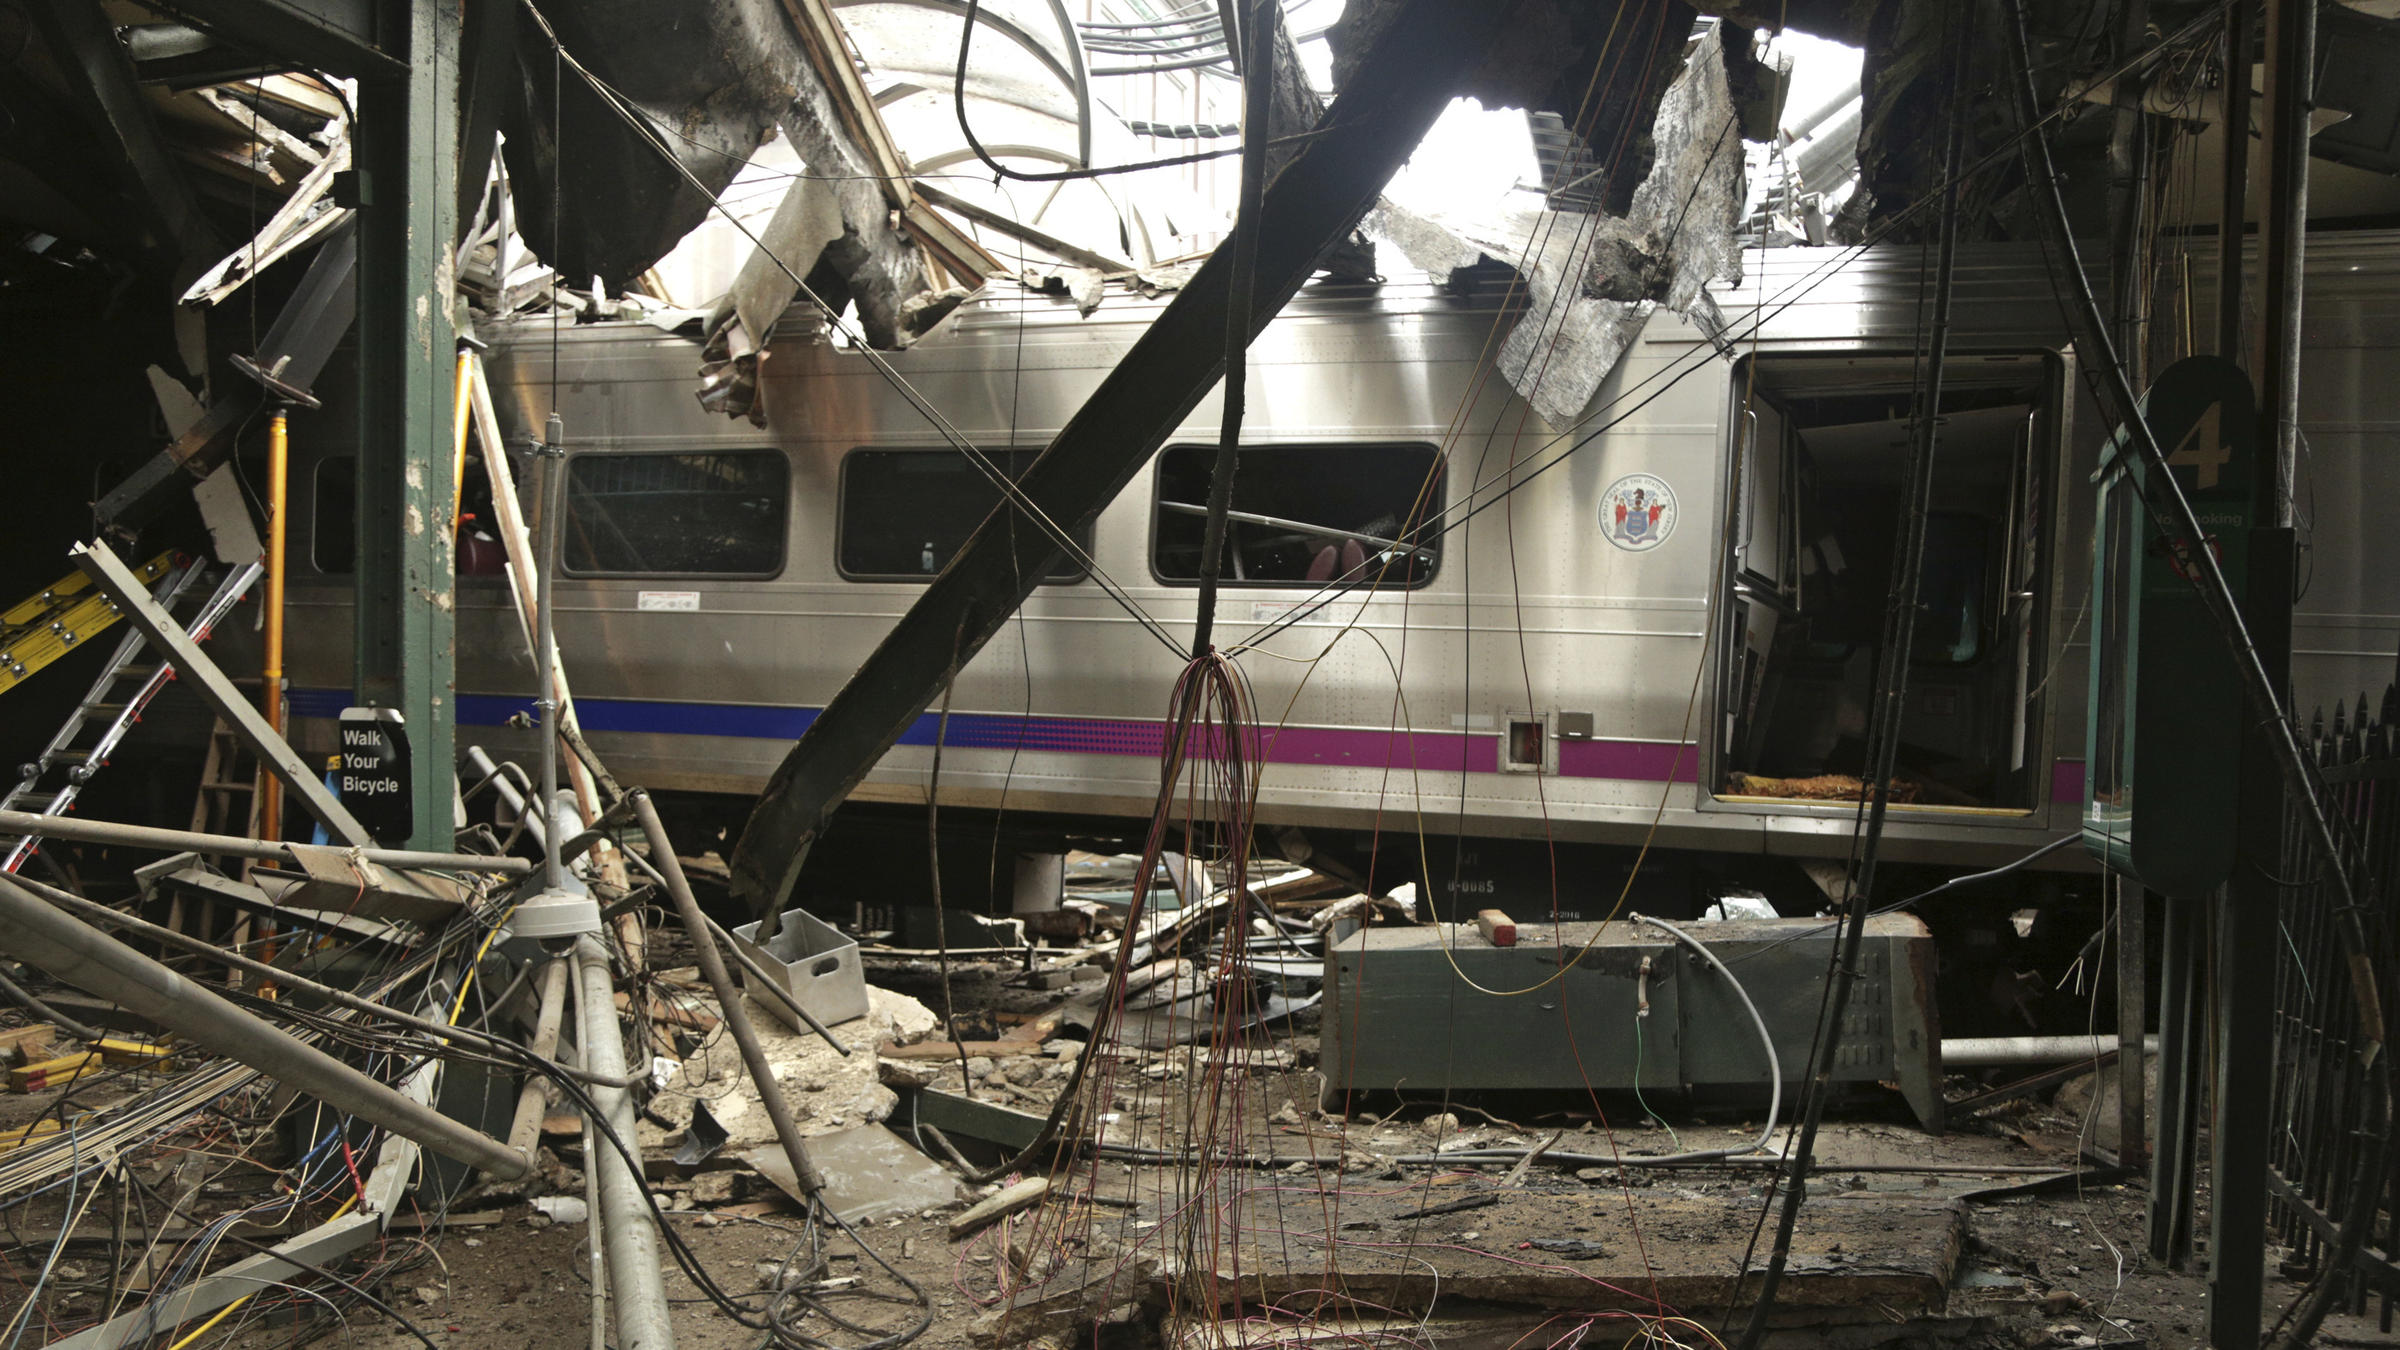 NJ Transit turned blind eye to engineer's sleep apnea: testimony